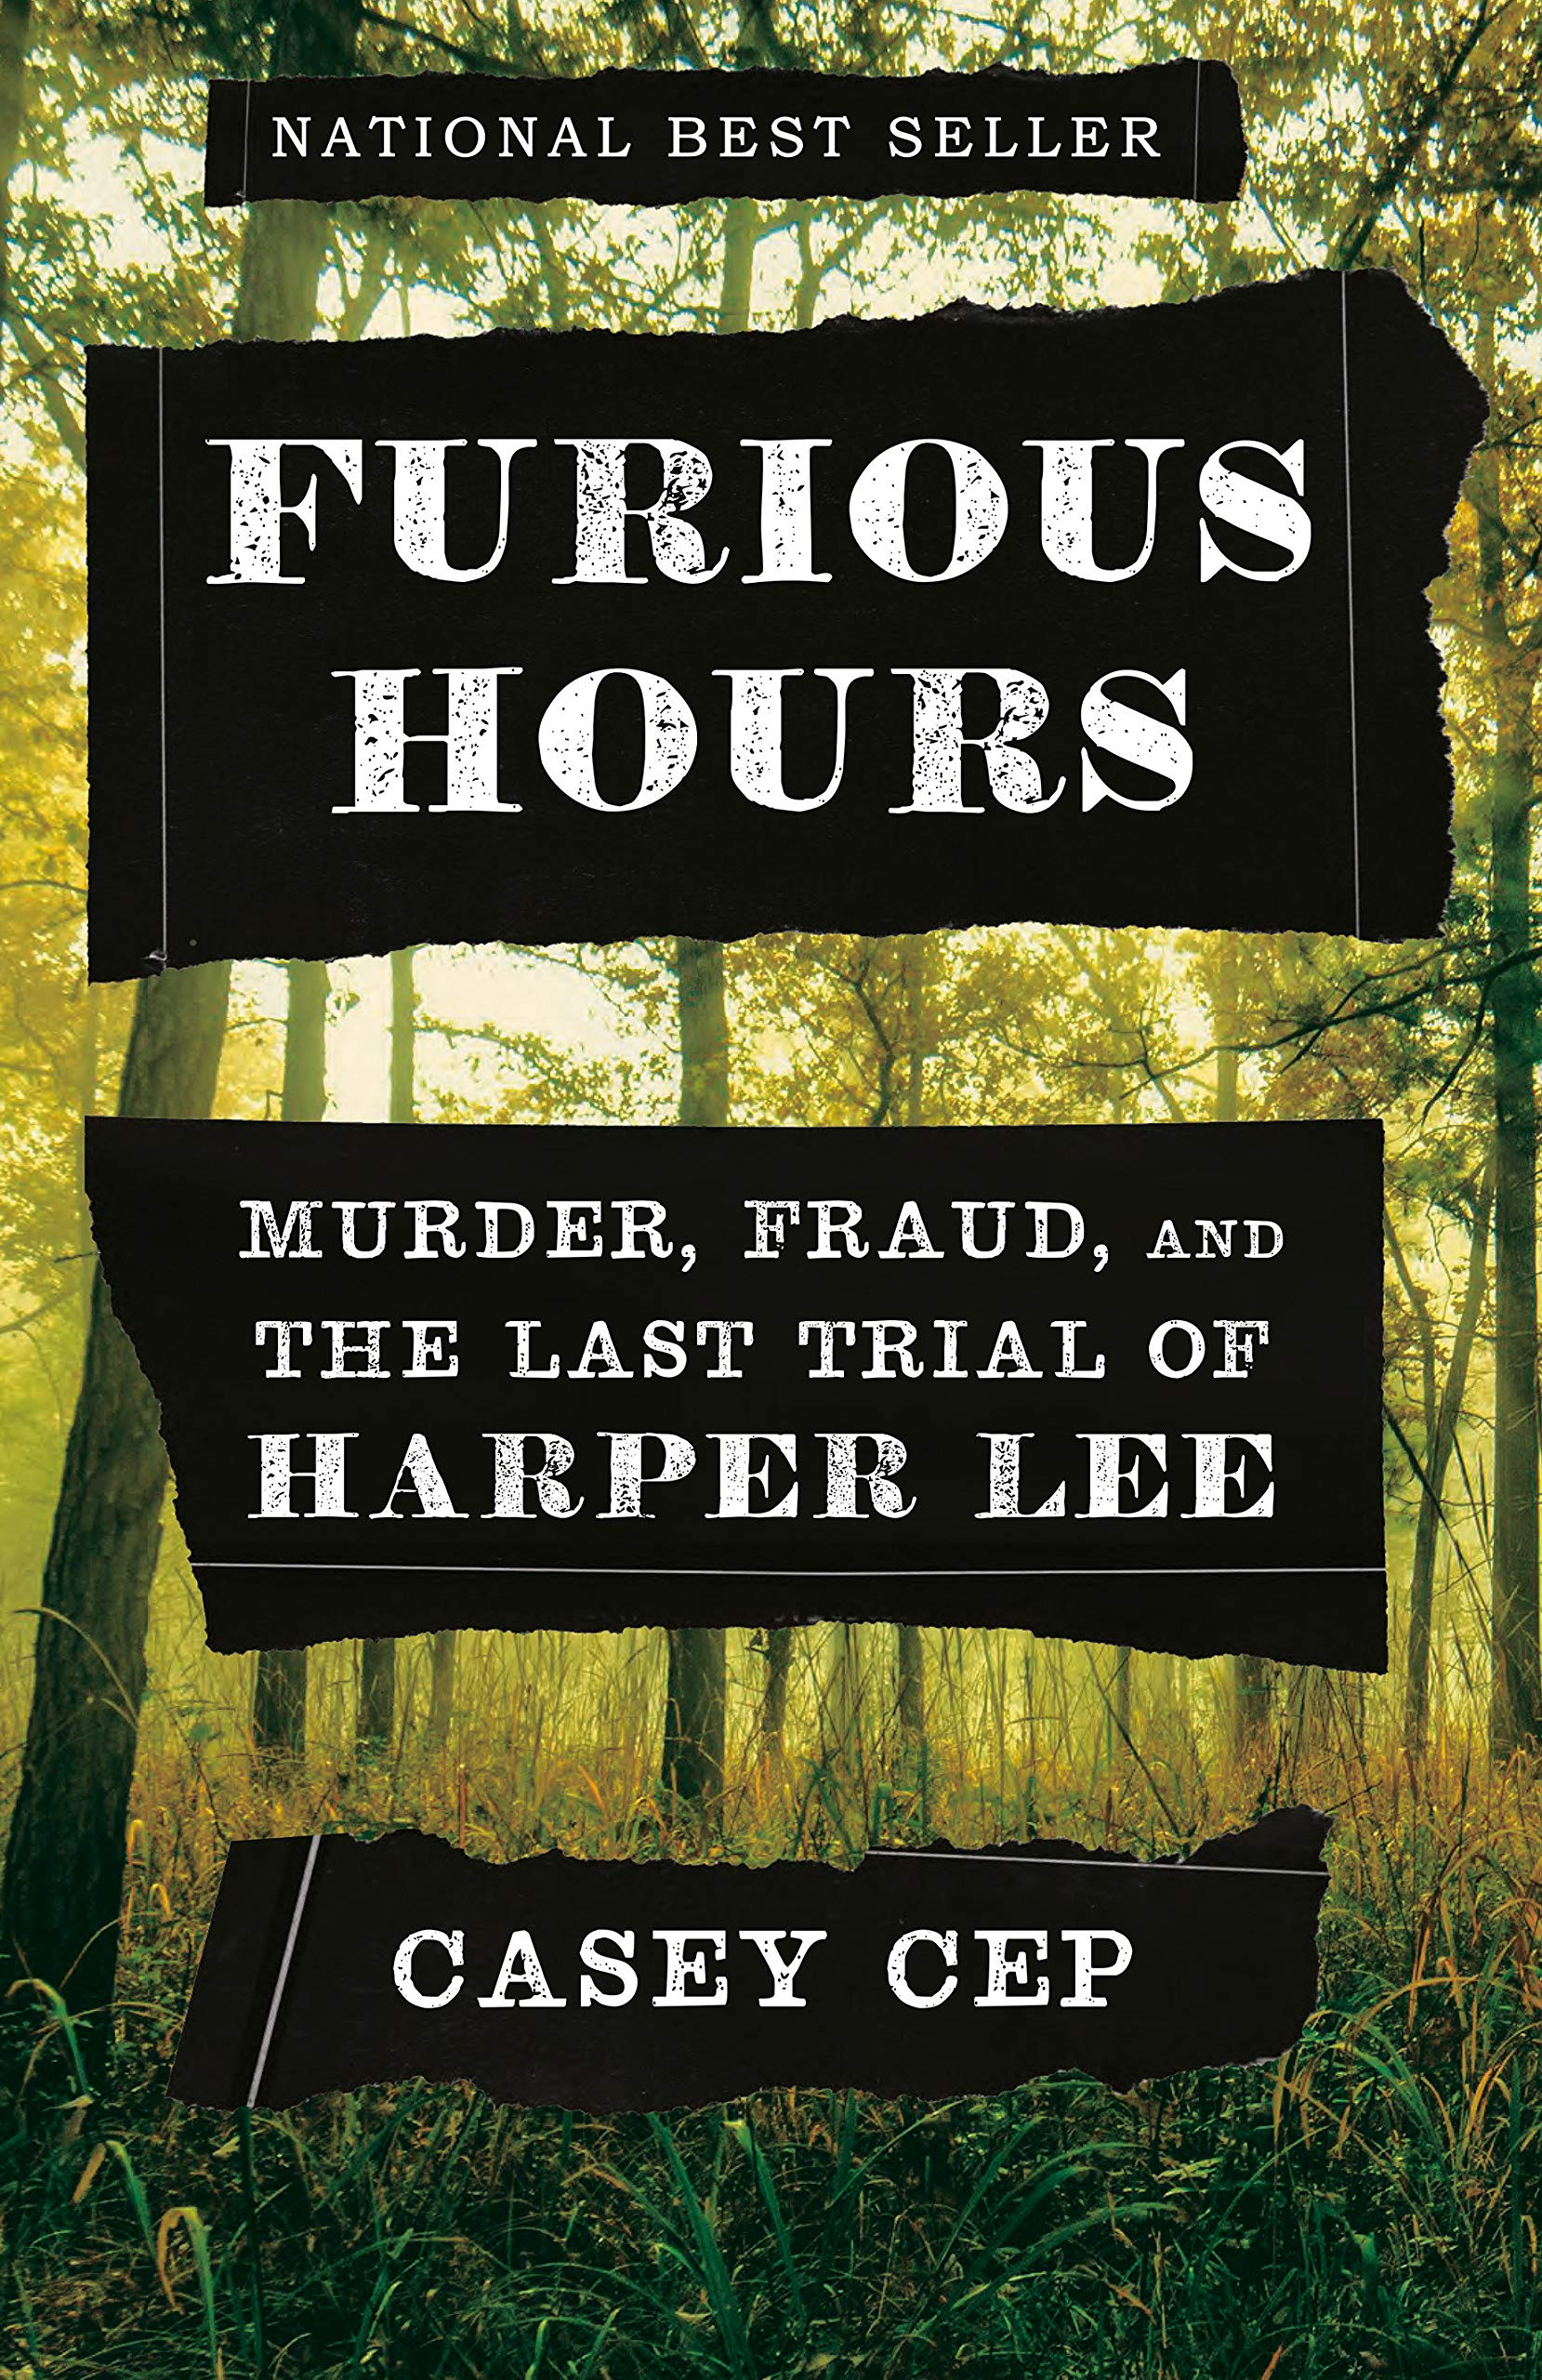 Non-Fiction Book Club (Furious Hours) - IN PERSON